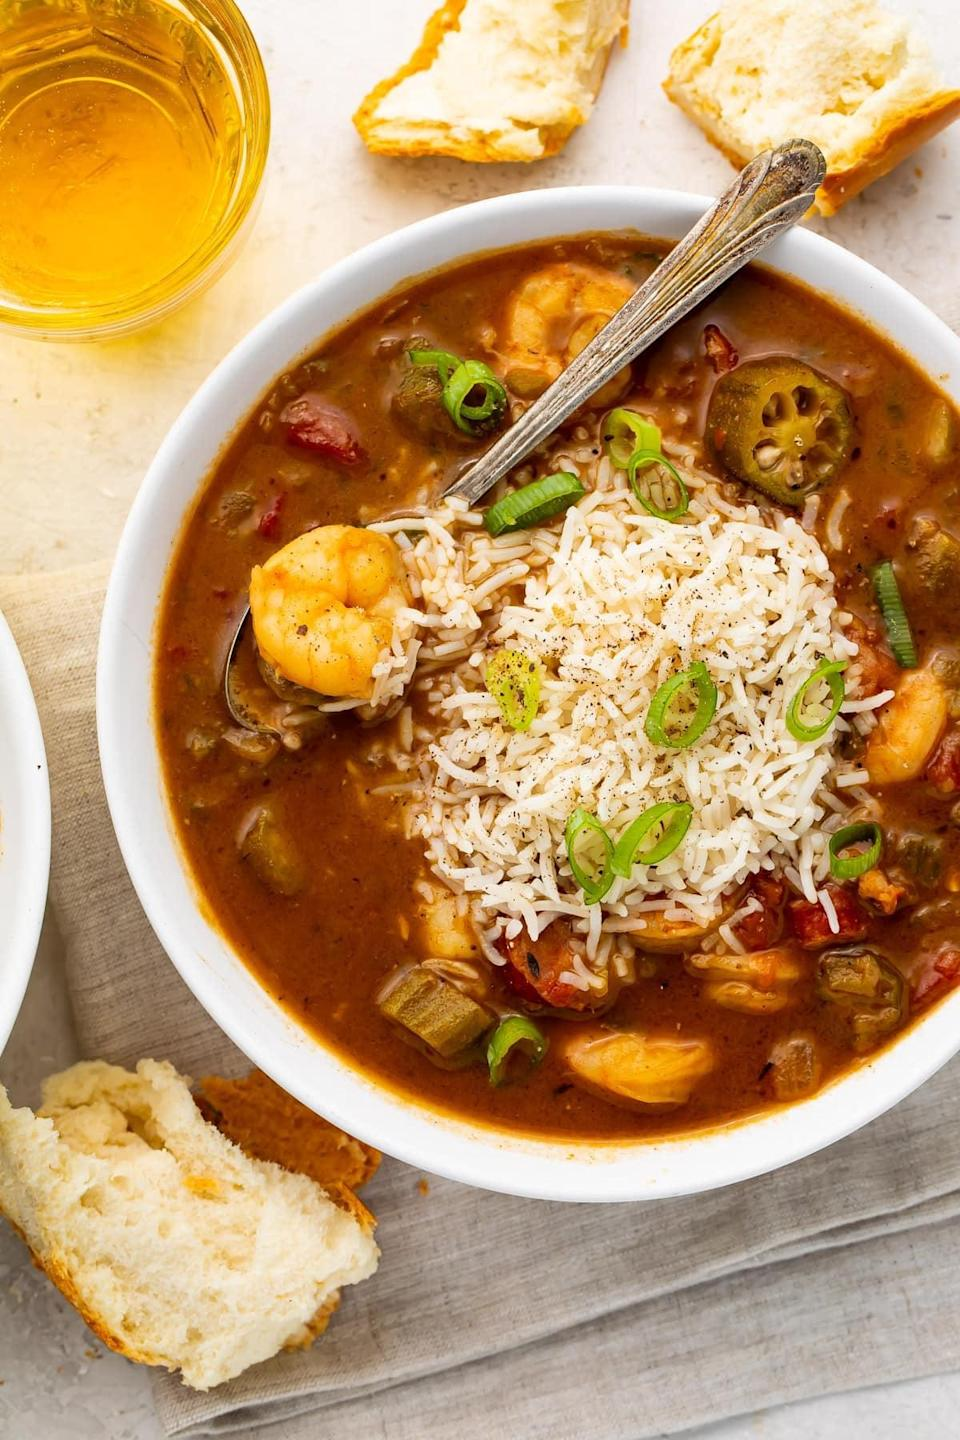 """<p>If you're in need of an authentic shrimp gumbo recipe, it doesn't get much better than this. Inspired by true New Orleans gumbo recipes, this dish is filled with andouille sausage, juicy shrimp, and all the best Cajun seasonings. </p> <p><strong>Get the recipe</strong>: <a href=""""https://40aprons.com/shrimp-andouille-gumbo/"""" class=""""link rapid-noclick-resp"""" rel=""""nofollow noopener"""" target=""""_blank"""" data-ylk=""""slk:shrimp gumbo"""">shrimp gumbo</a></p>"""